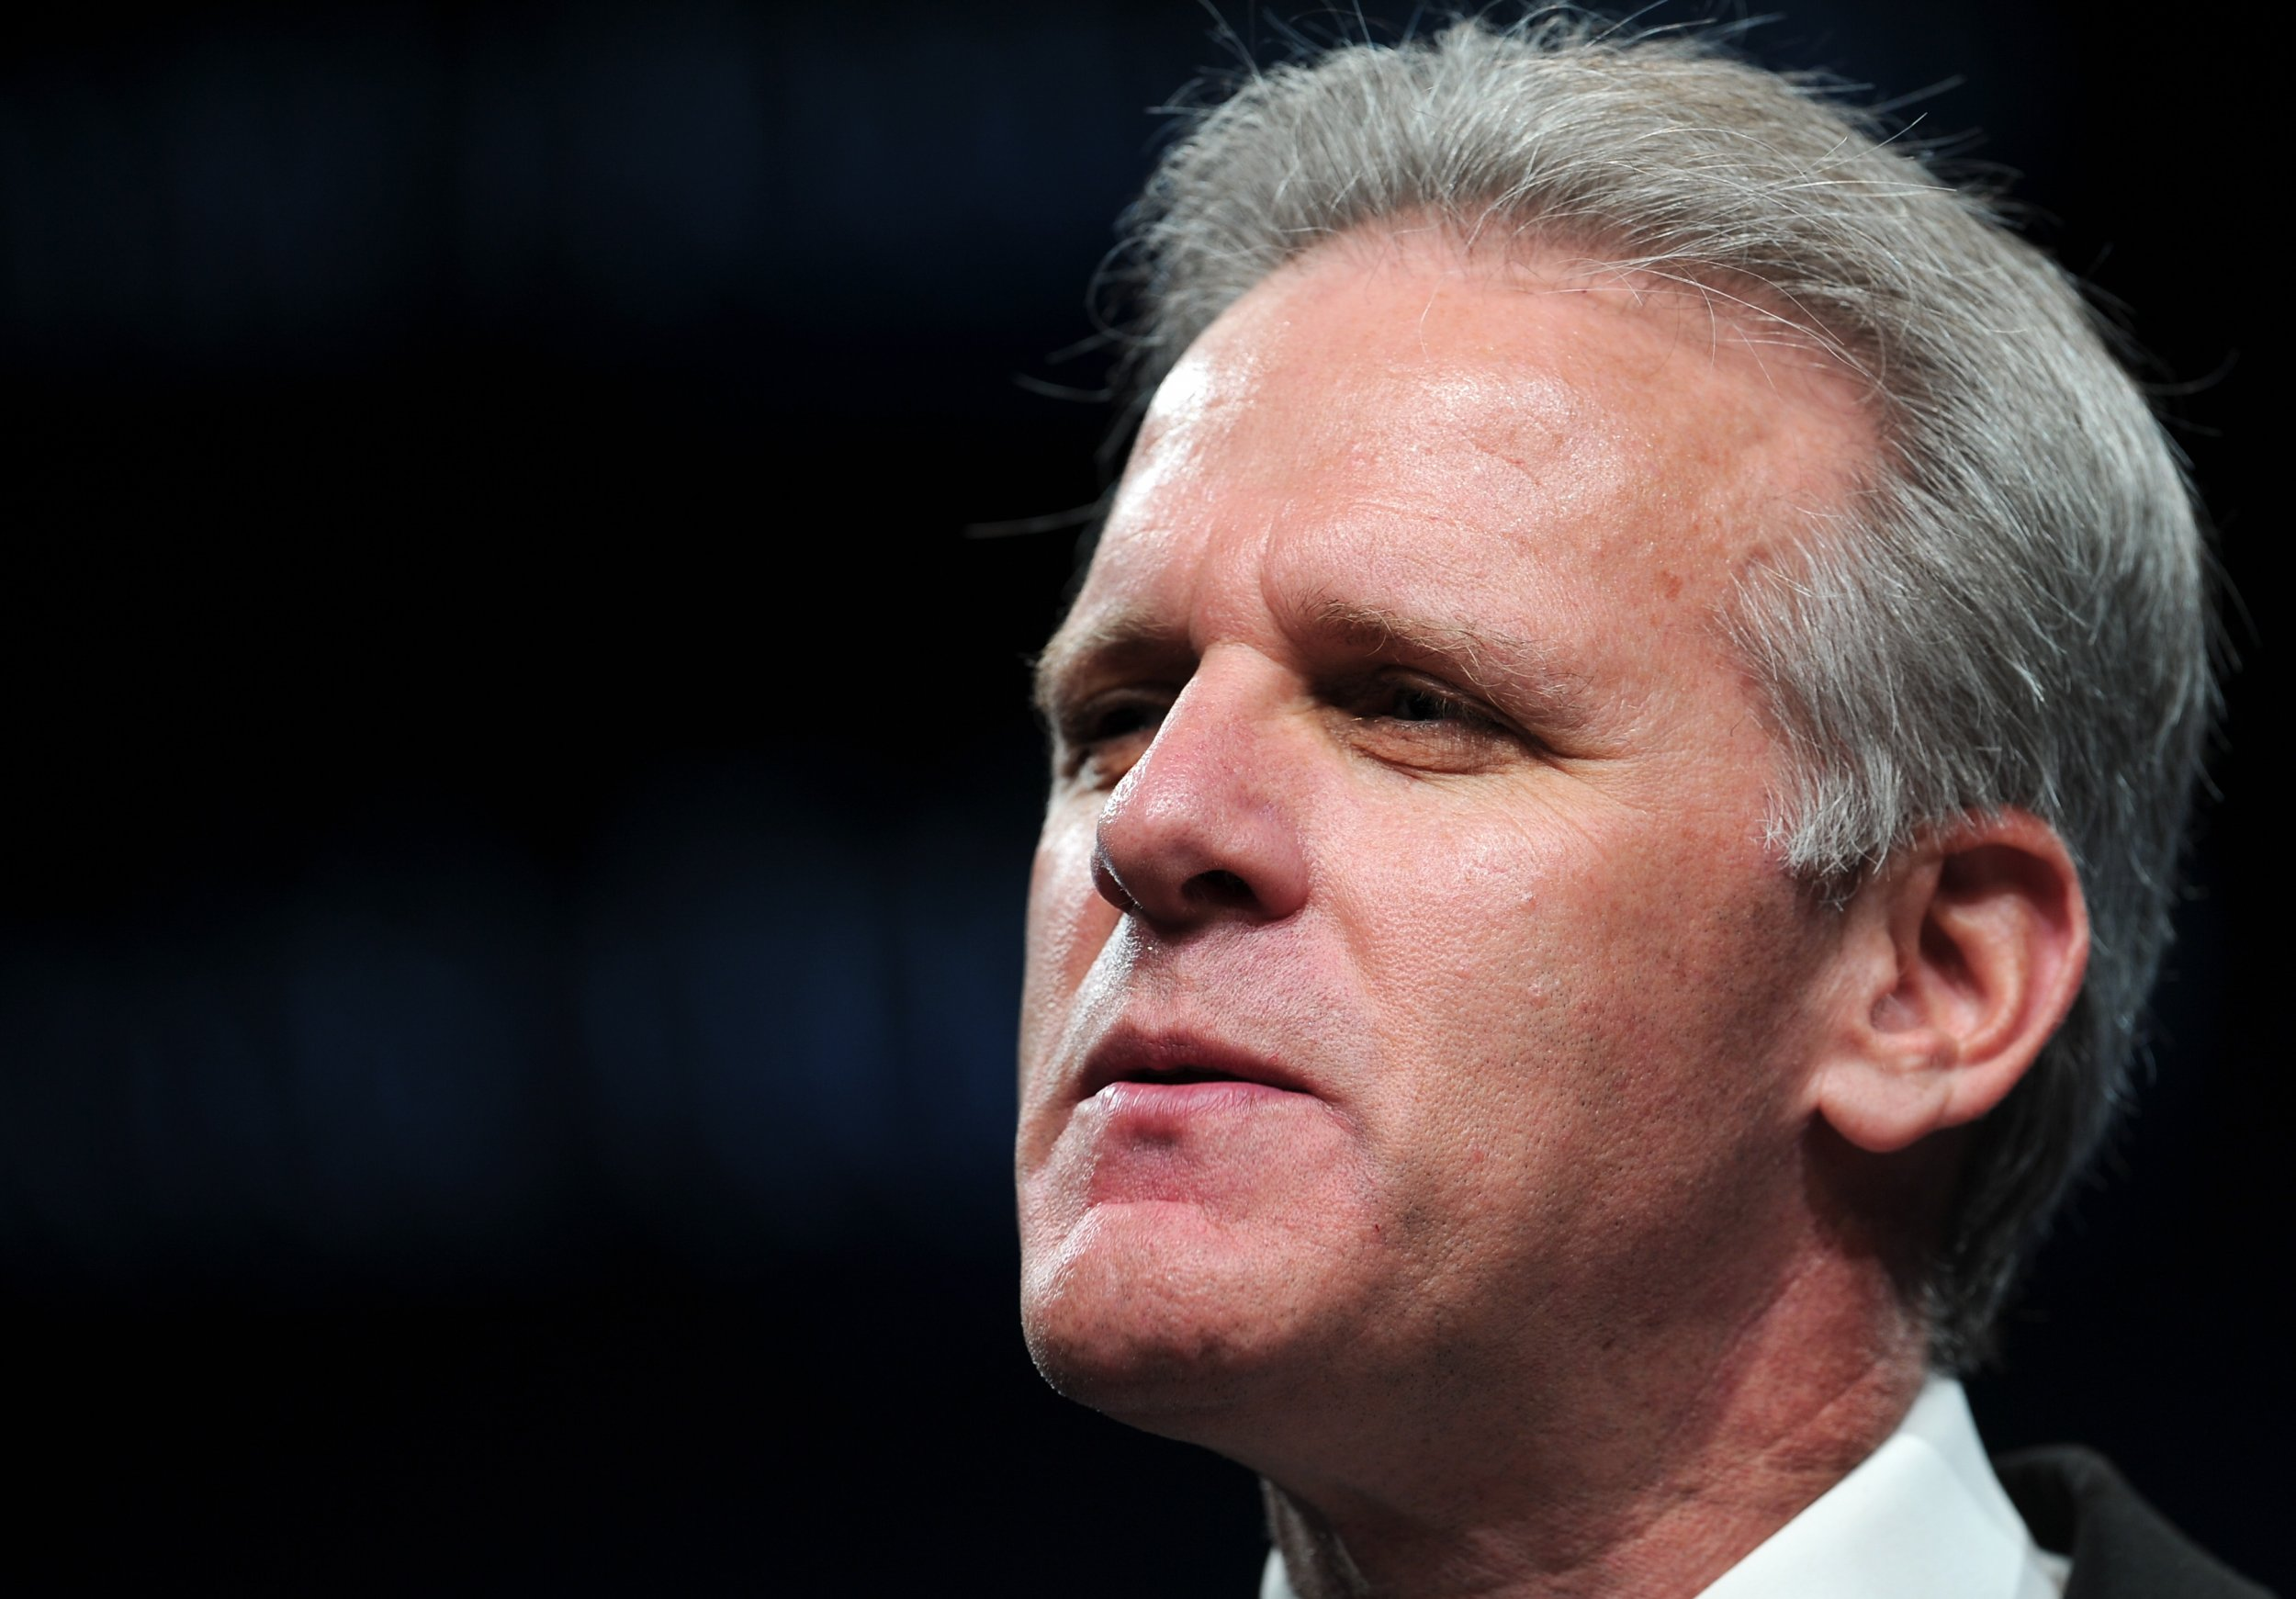 Former Israeli ambassador to the U.S. Michael Oren